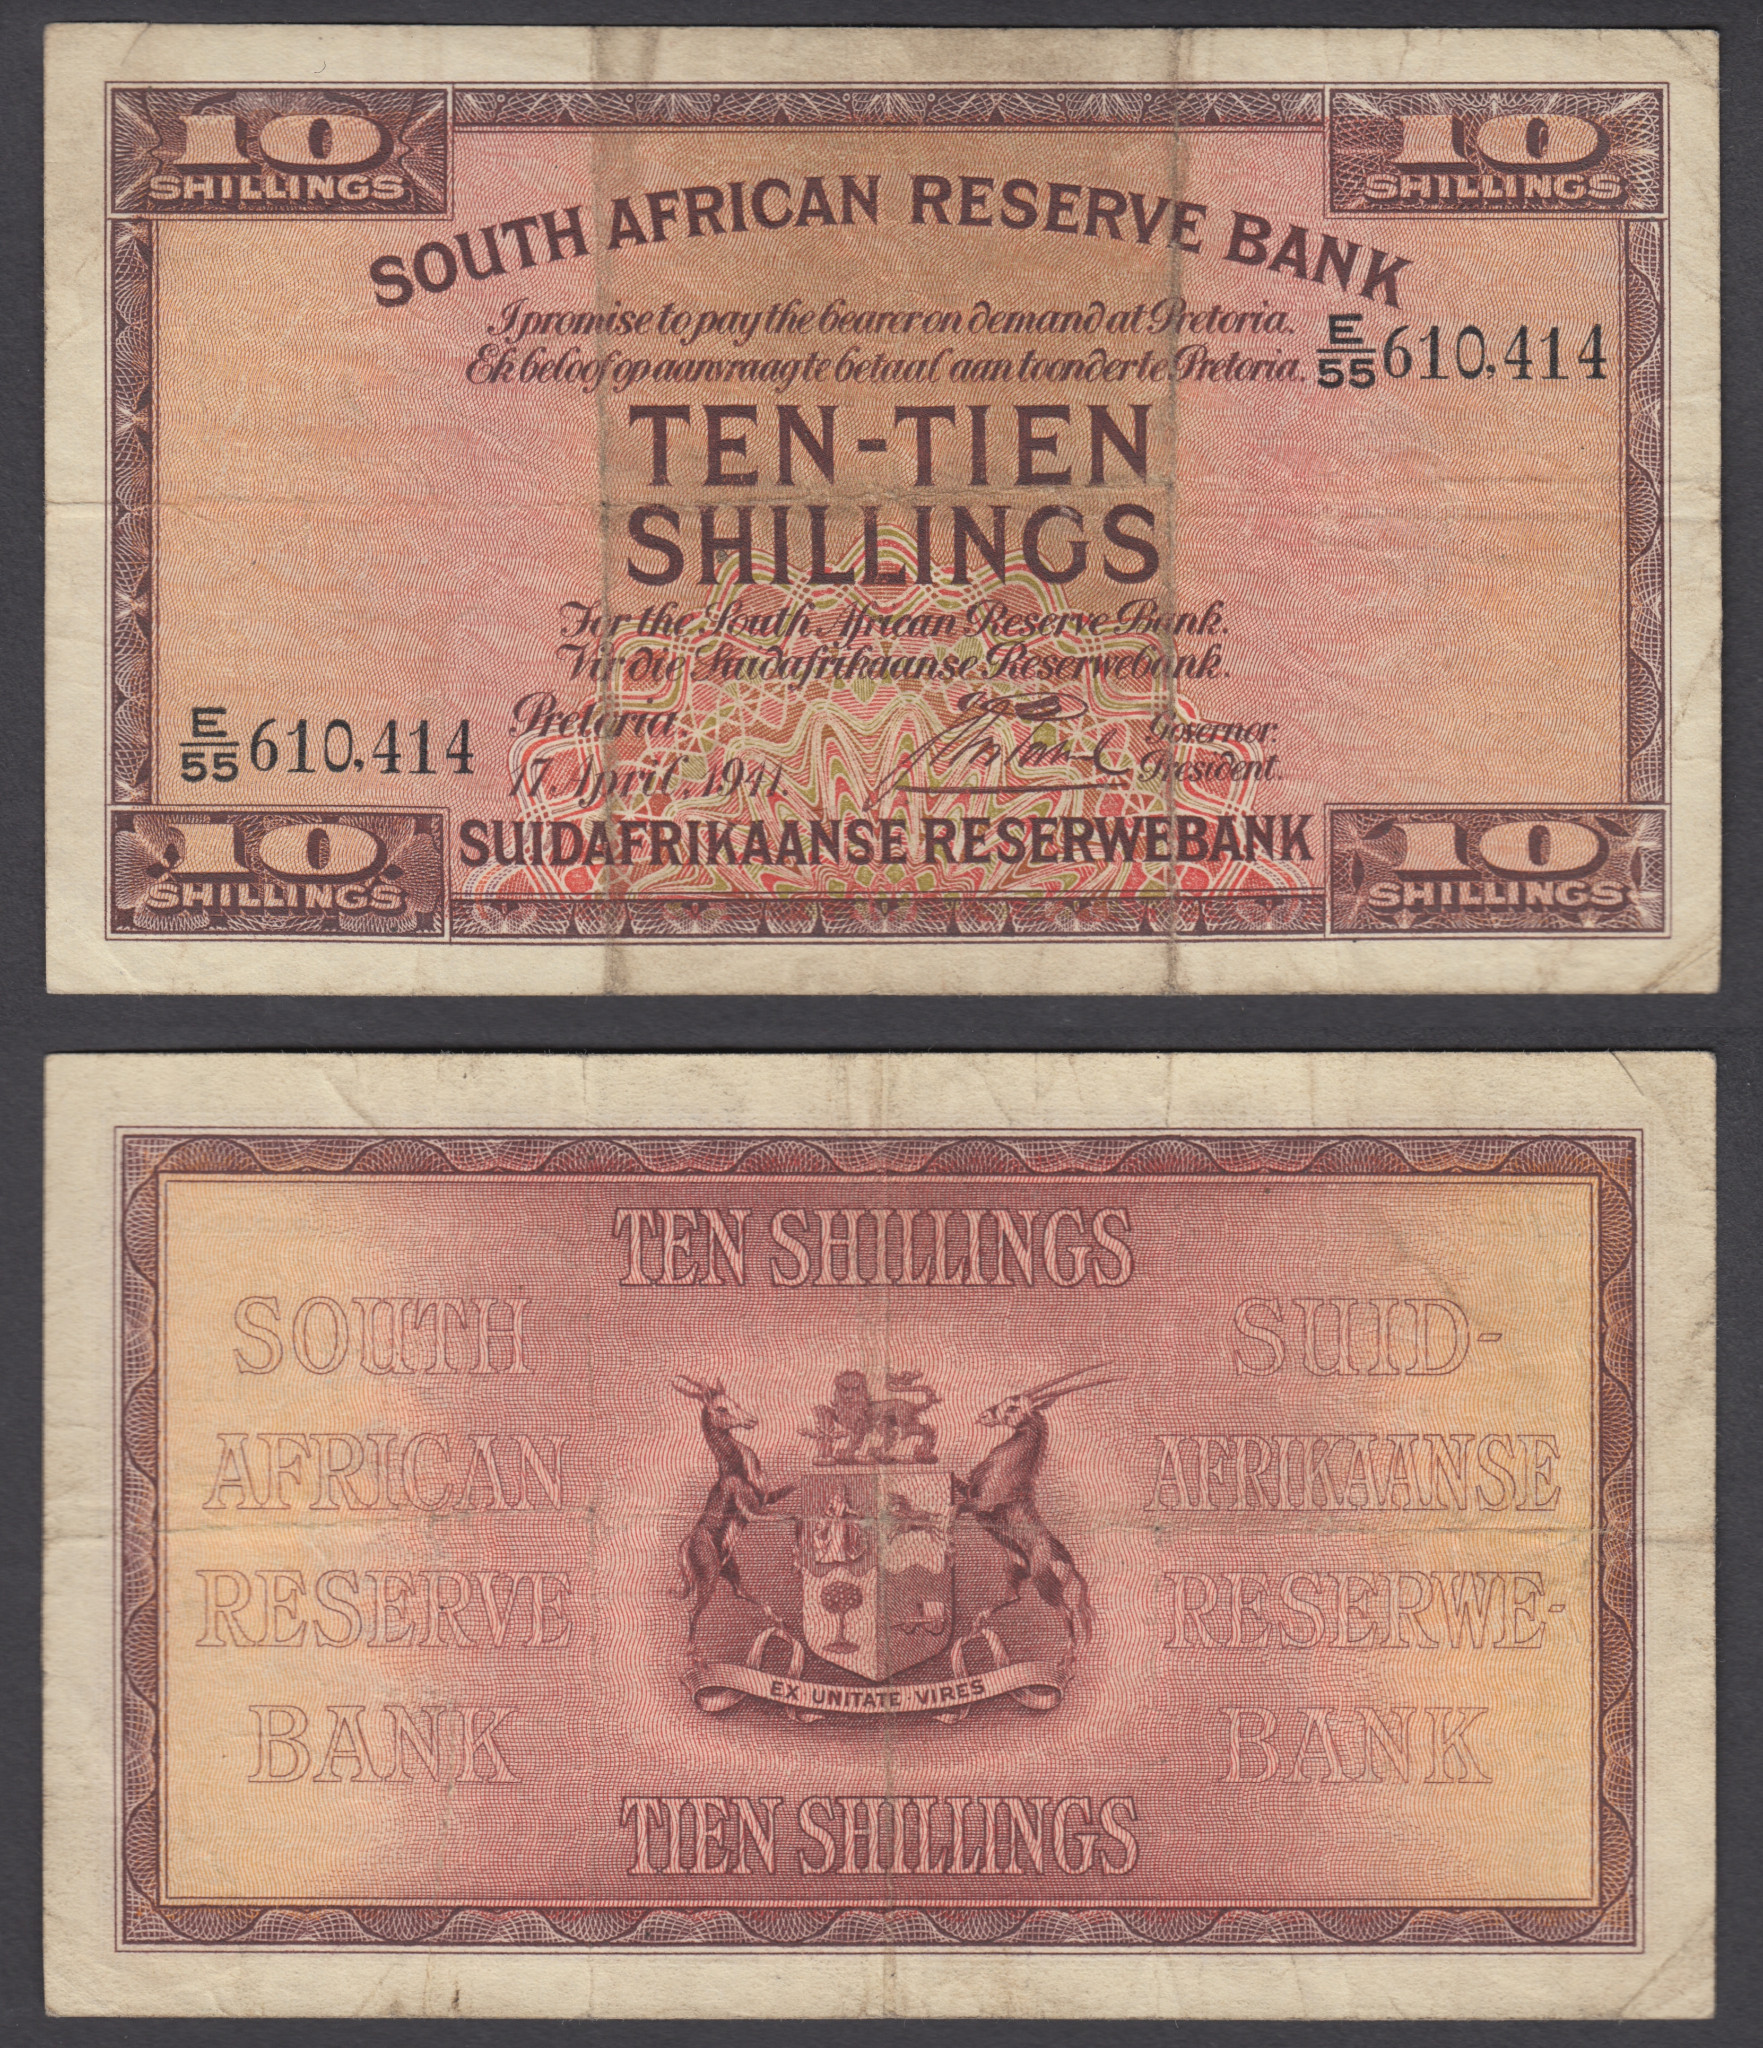 Details about South Africa 10 Shillings 1941 (F-VF) Condition Banknote P-82d